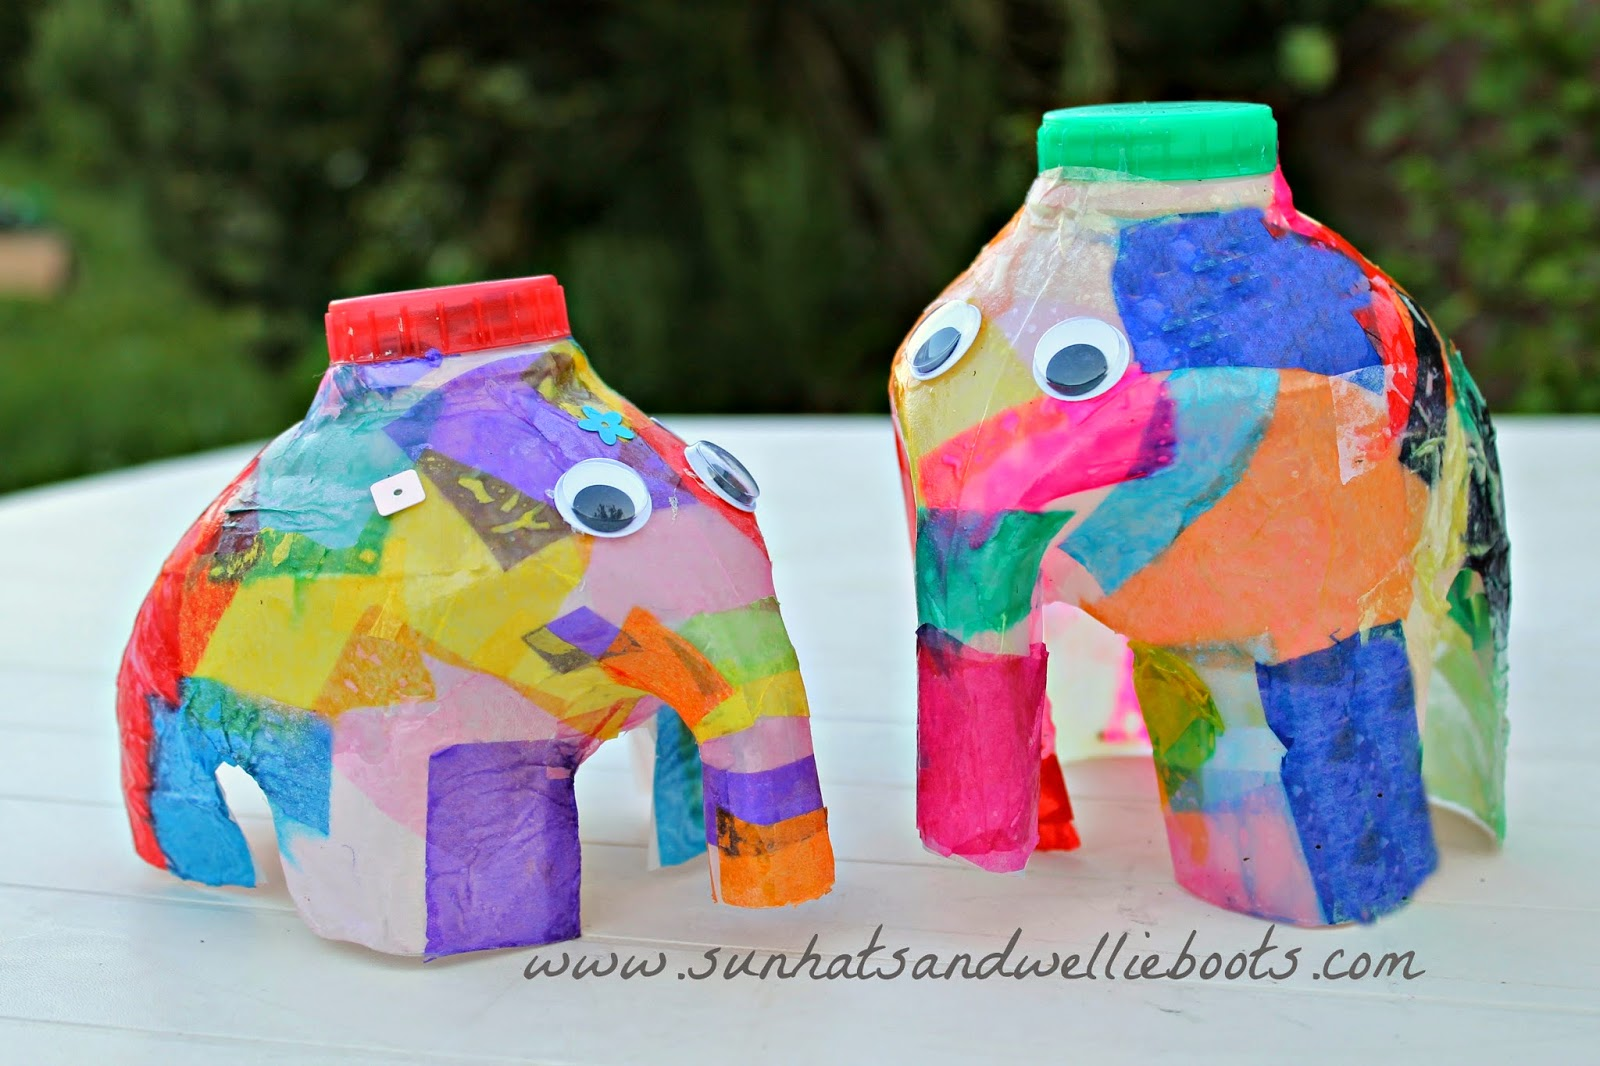 Sun hats wellie boots elmer the elephant lantern made for Things that can be made out of plastic bottles